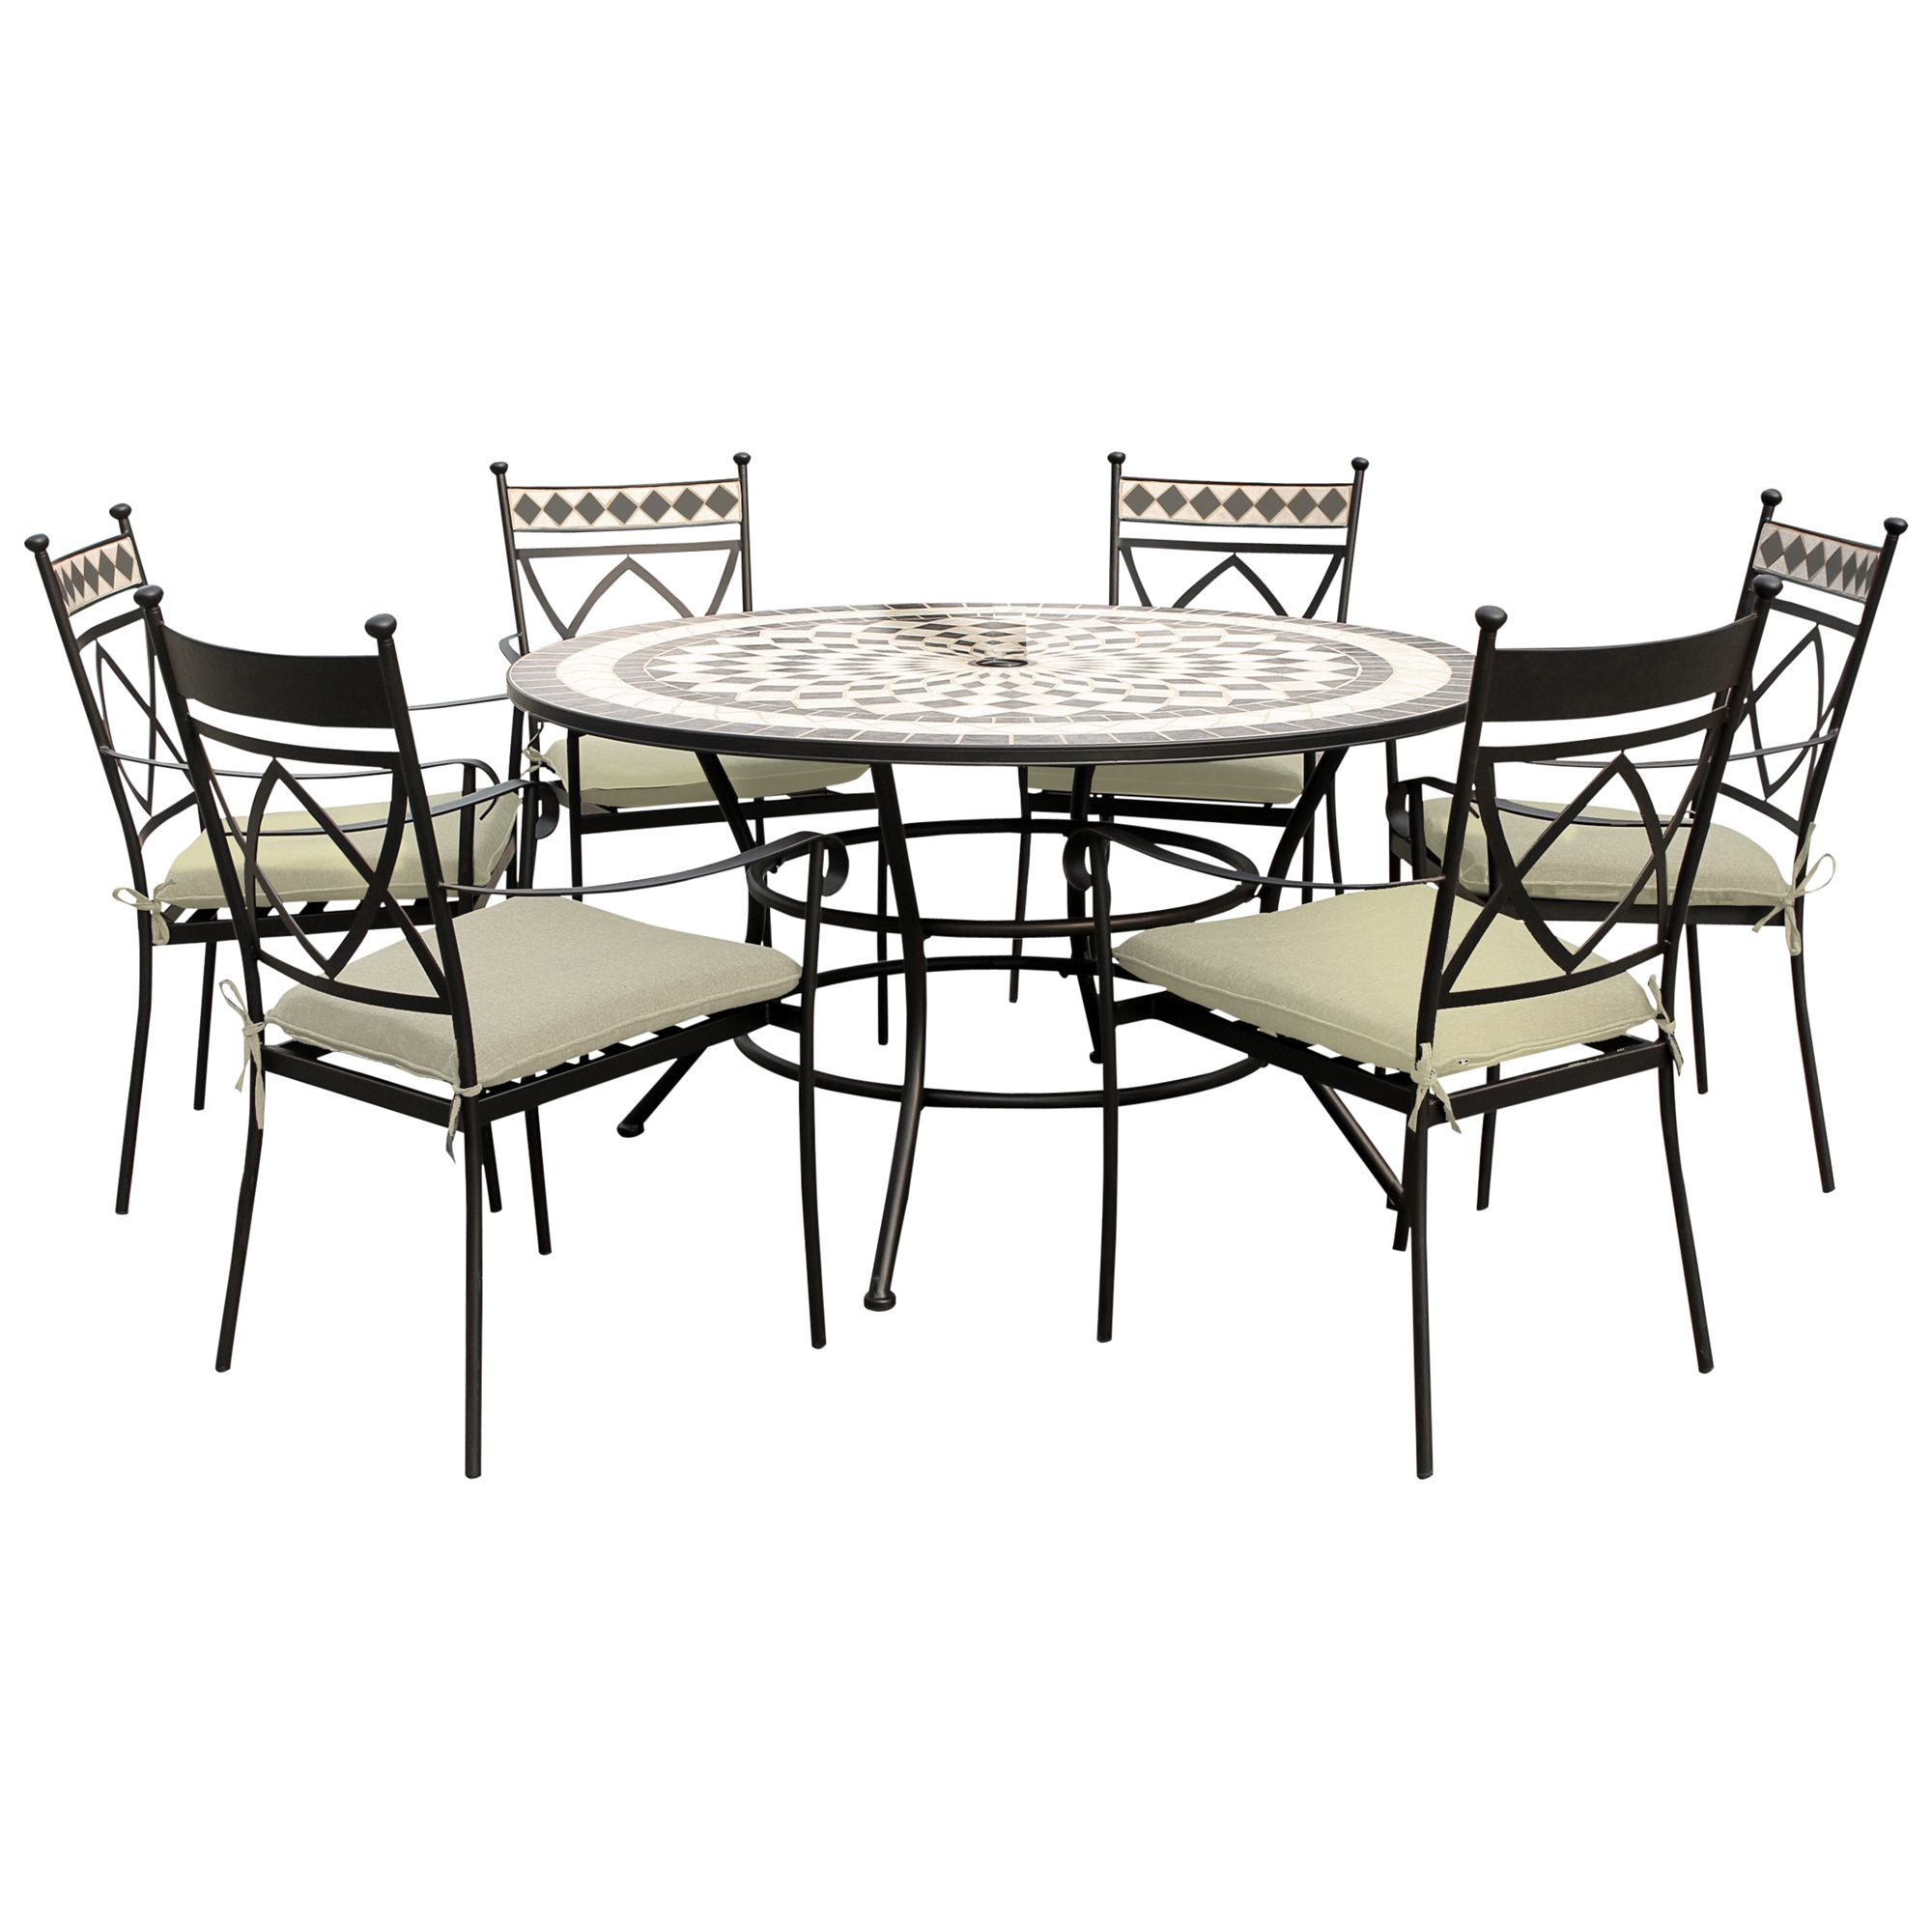 outdoor dining set shop for cheap sheds garden furniture and save